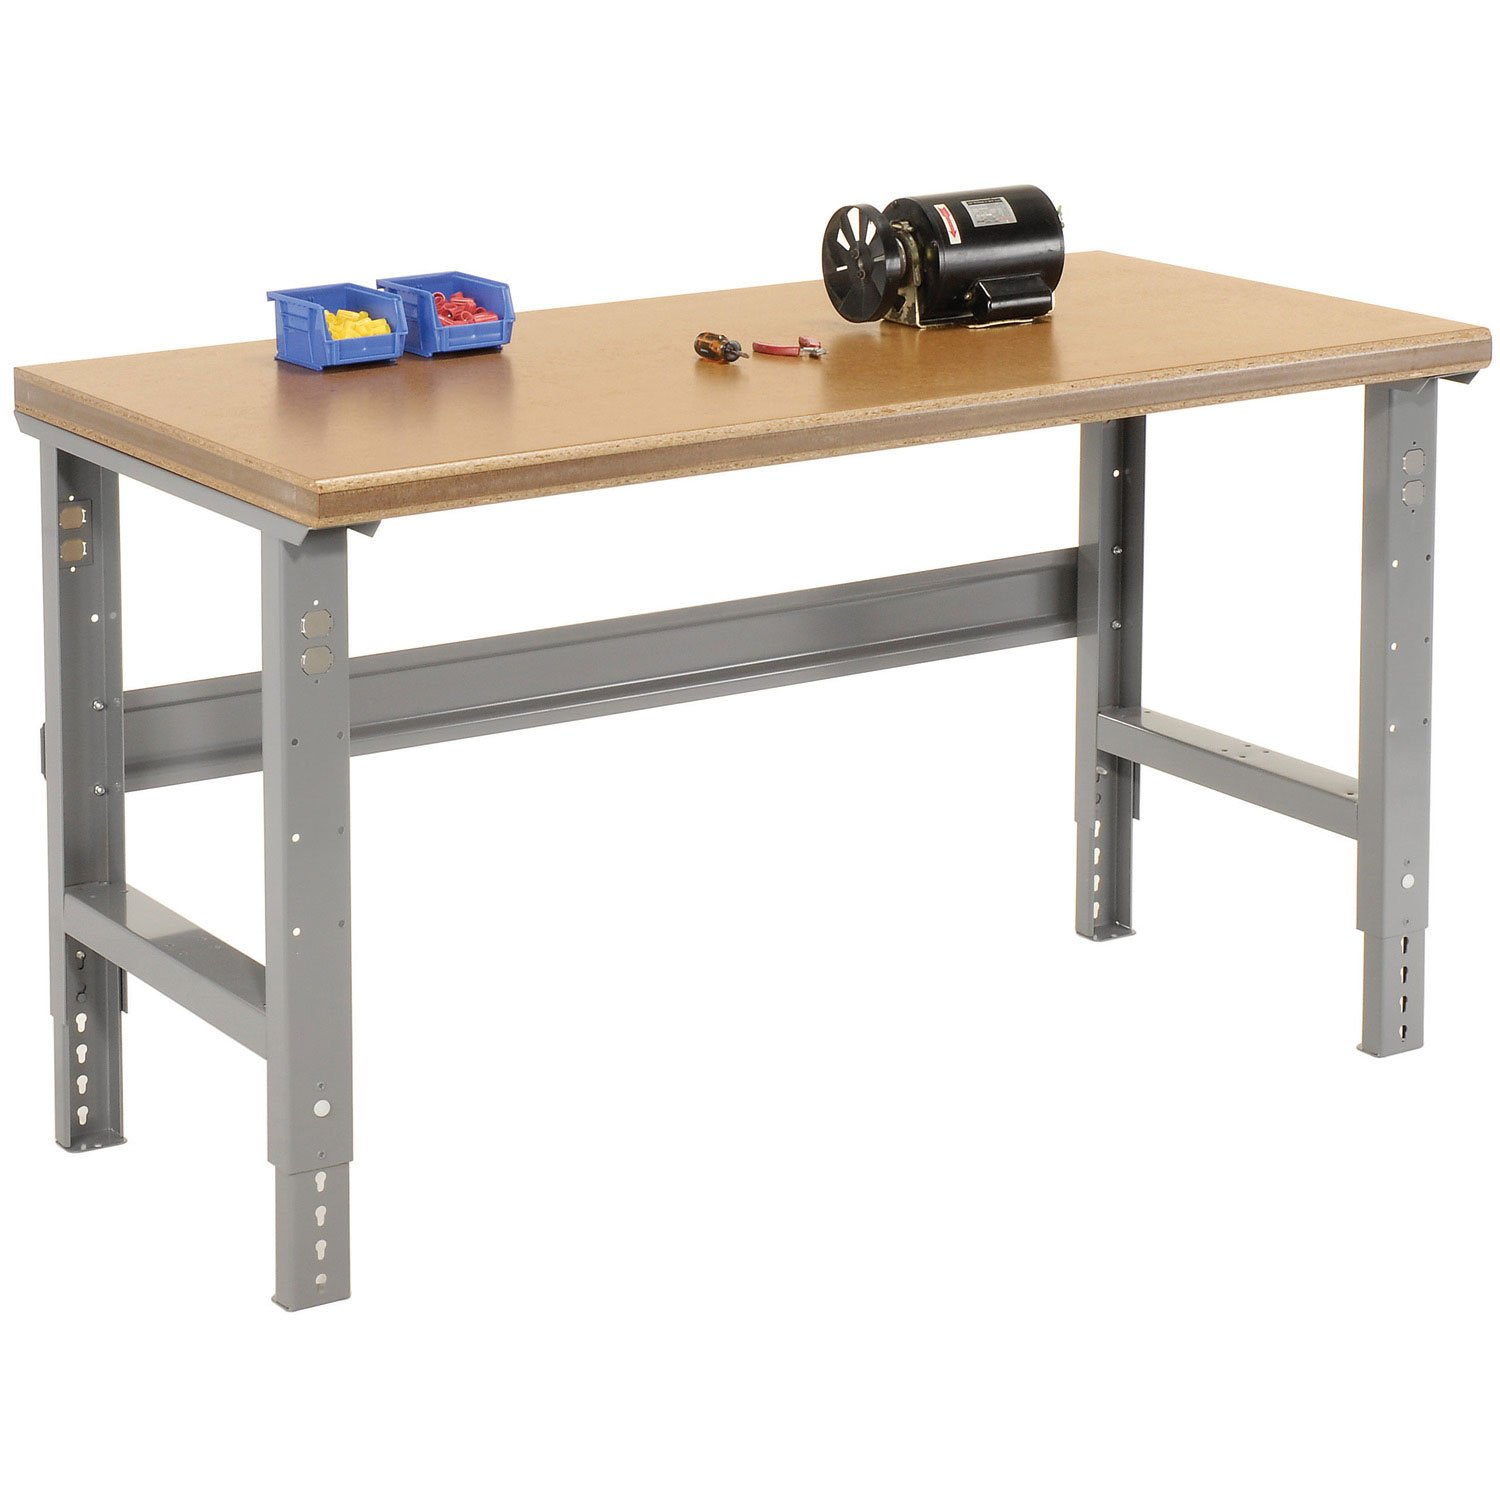 Adjustable Height Shop Top Safety Edge Work Bench, 72''W X 36''D, Gray